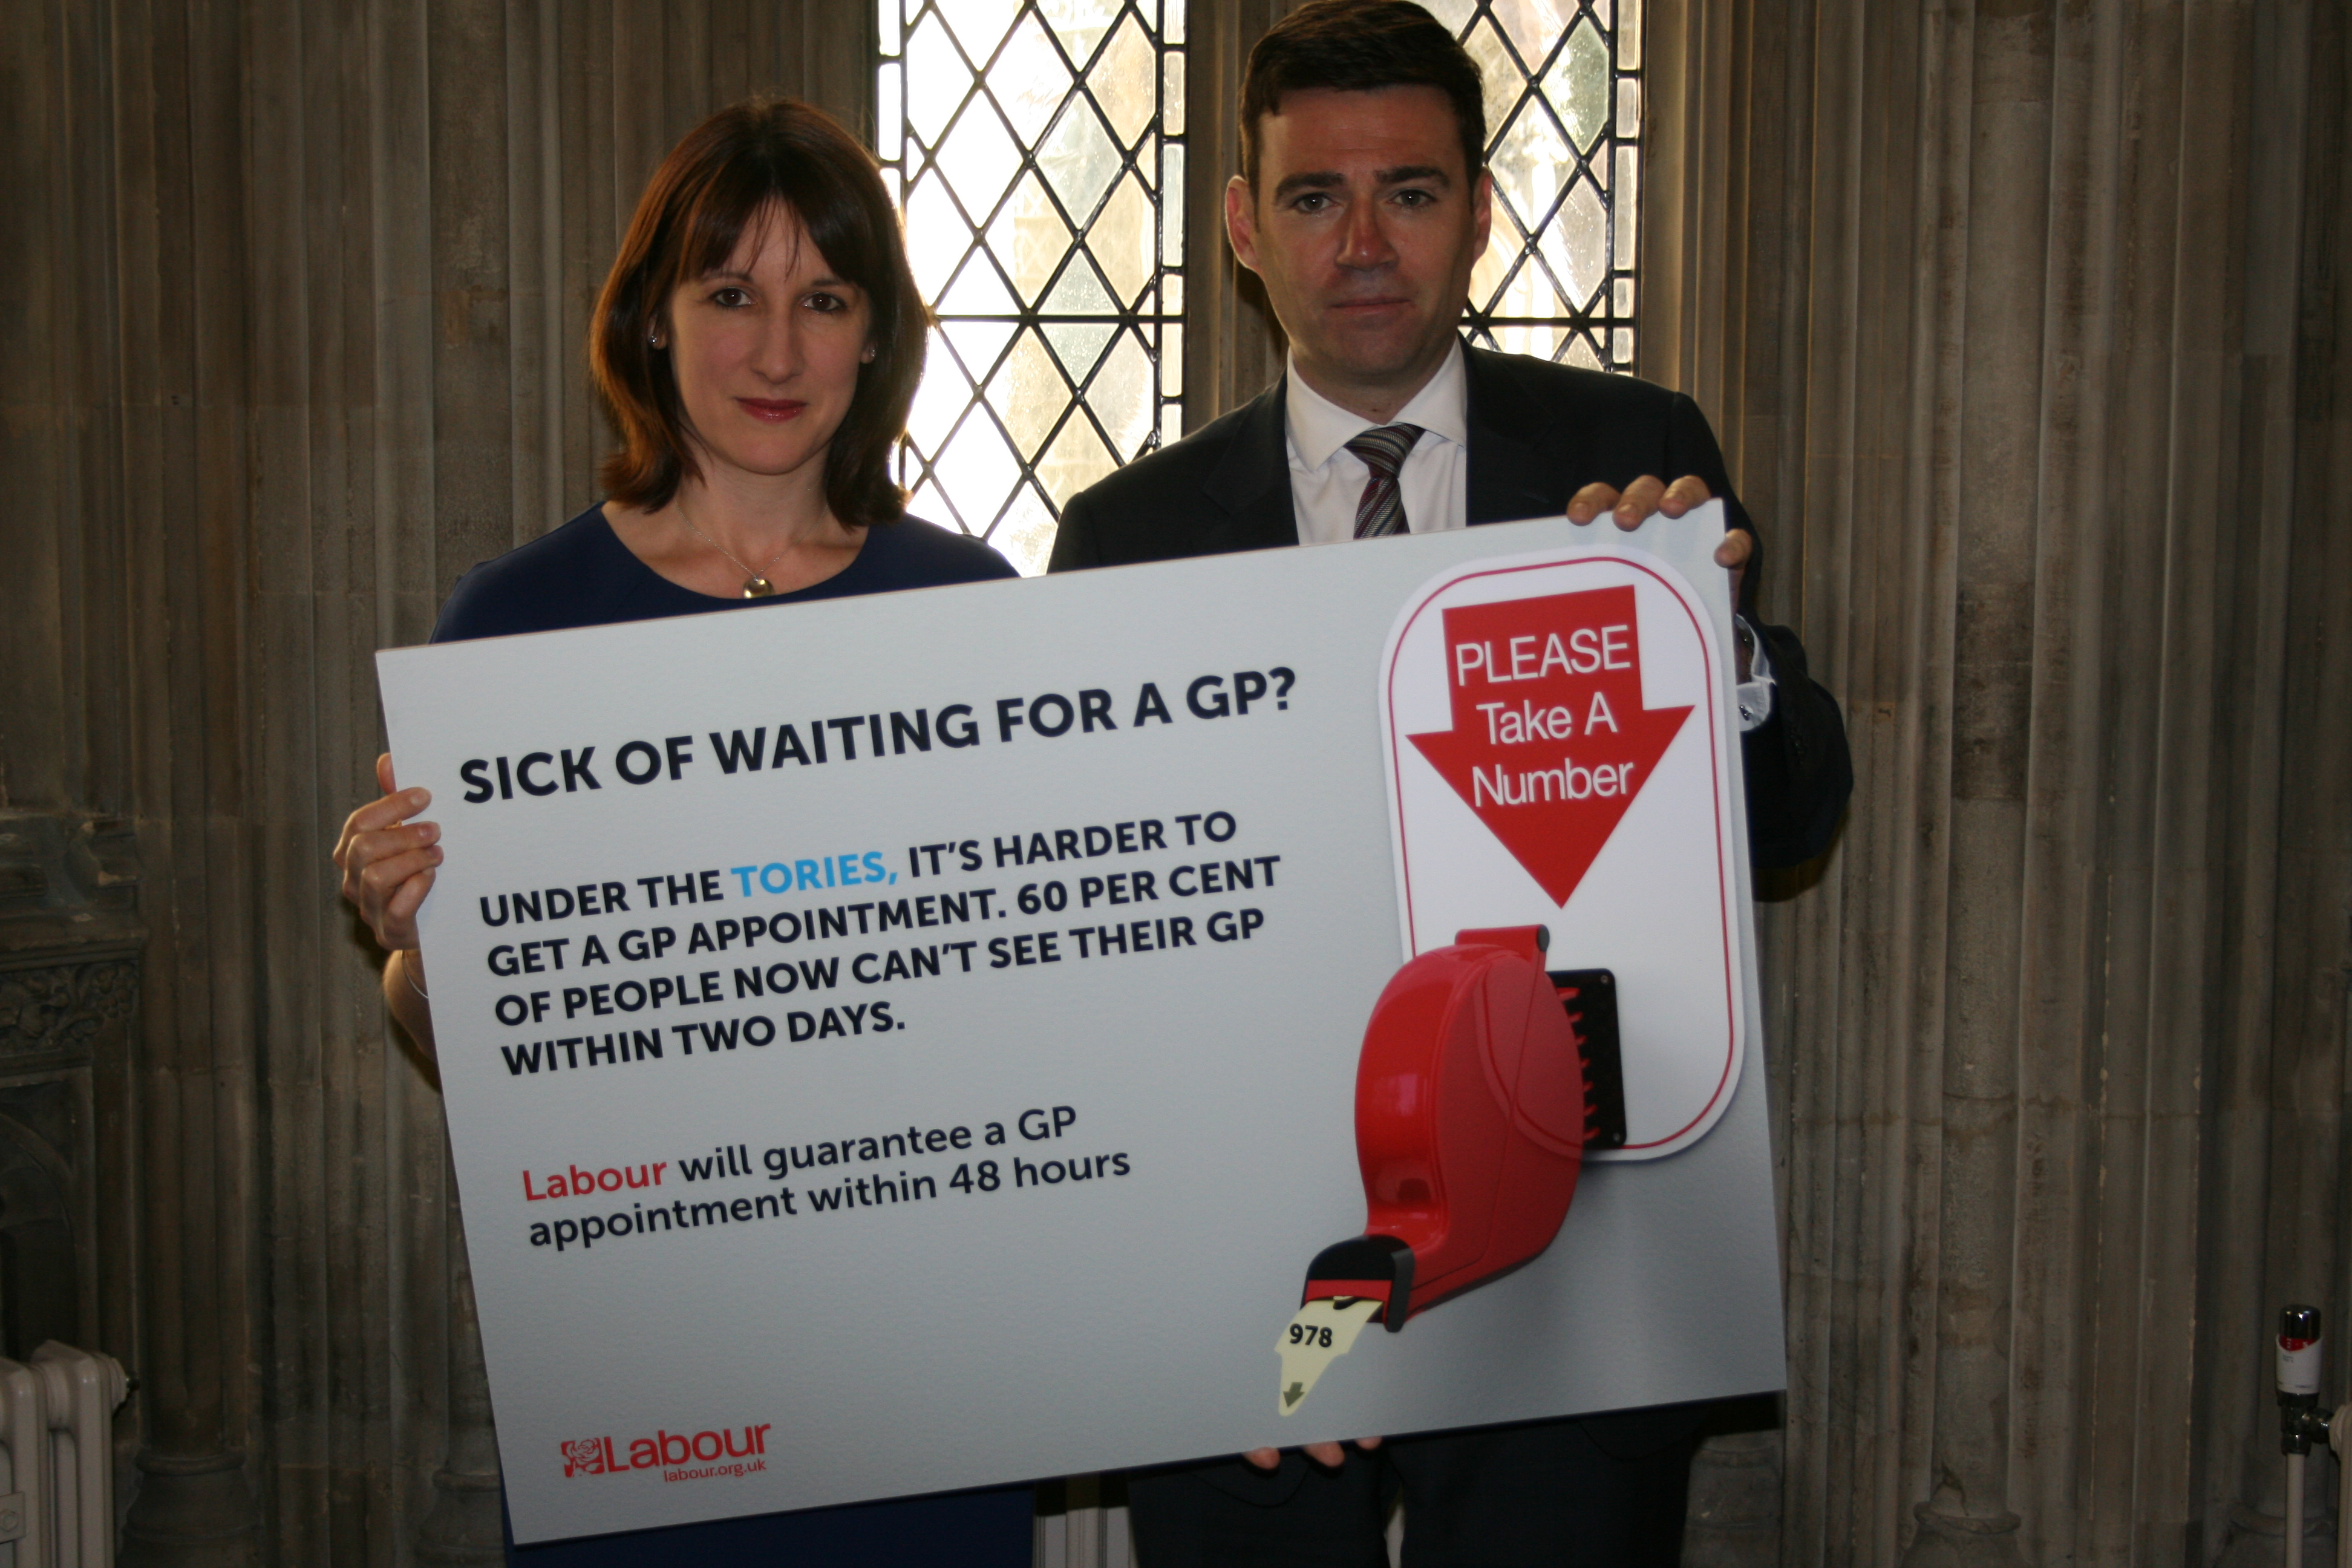 Andy_Burnham_GP_appointment_within_48_hrs_prop.jpg